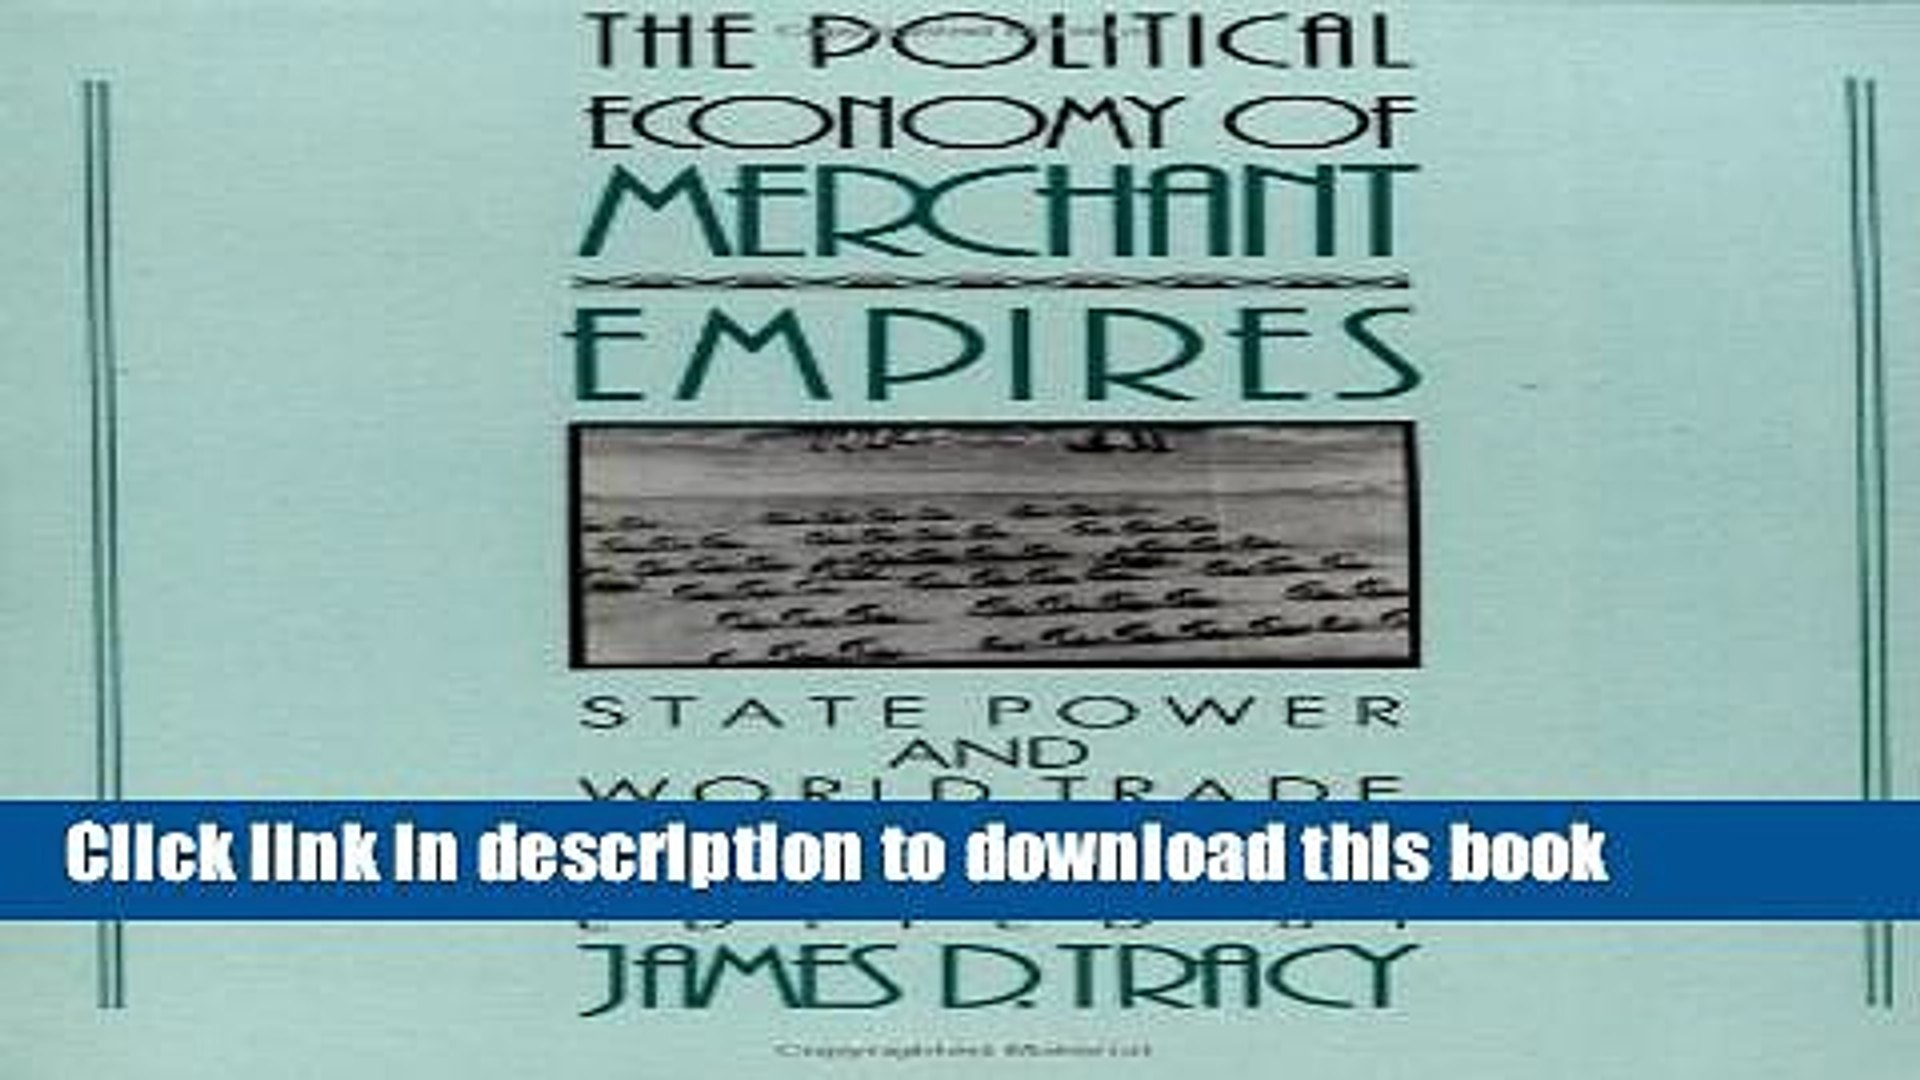 Download  The Political Economy of Merchant Empires: State Power and World Trade, 1350-1750